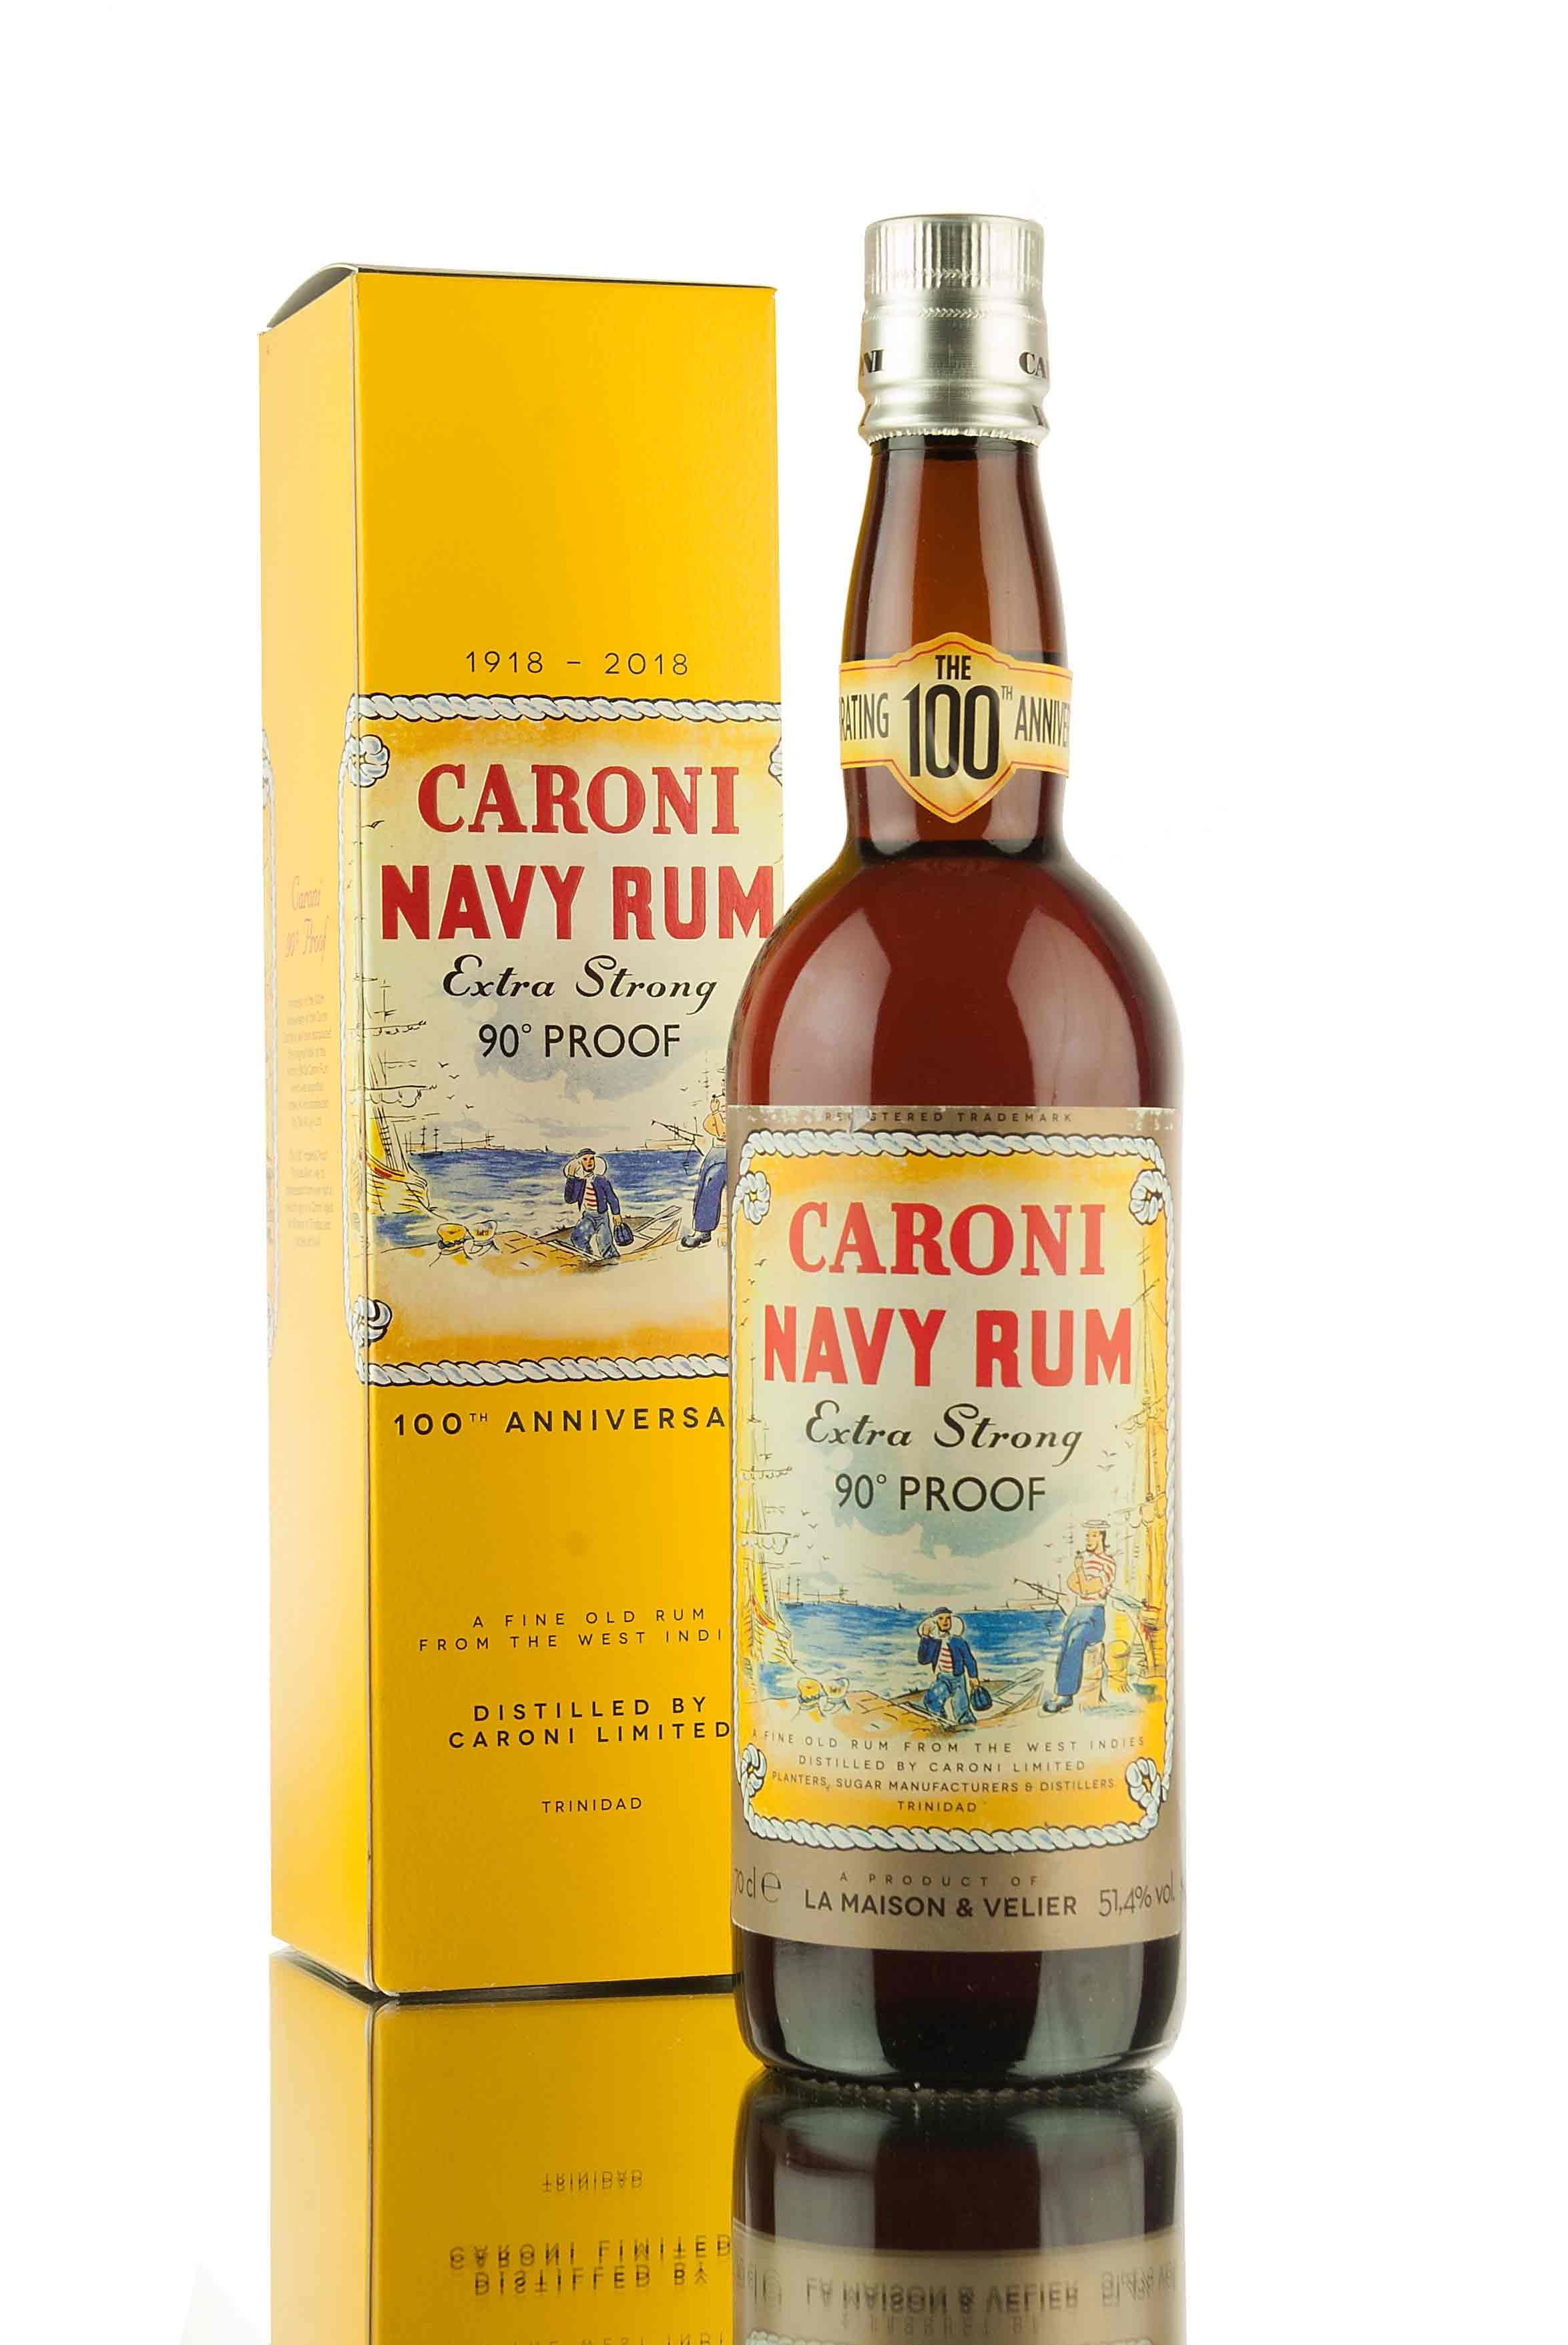 Caroni 18 Year Old Navy Rum - 100th Anniversary